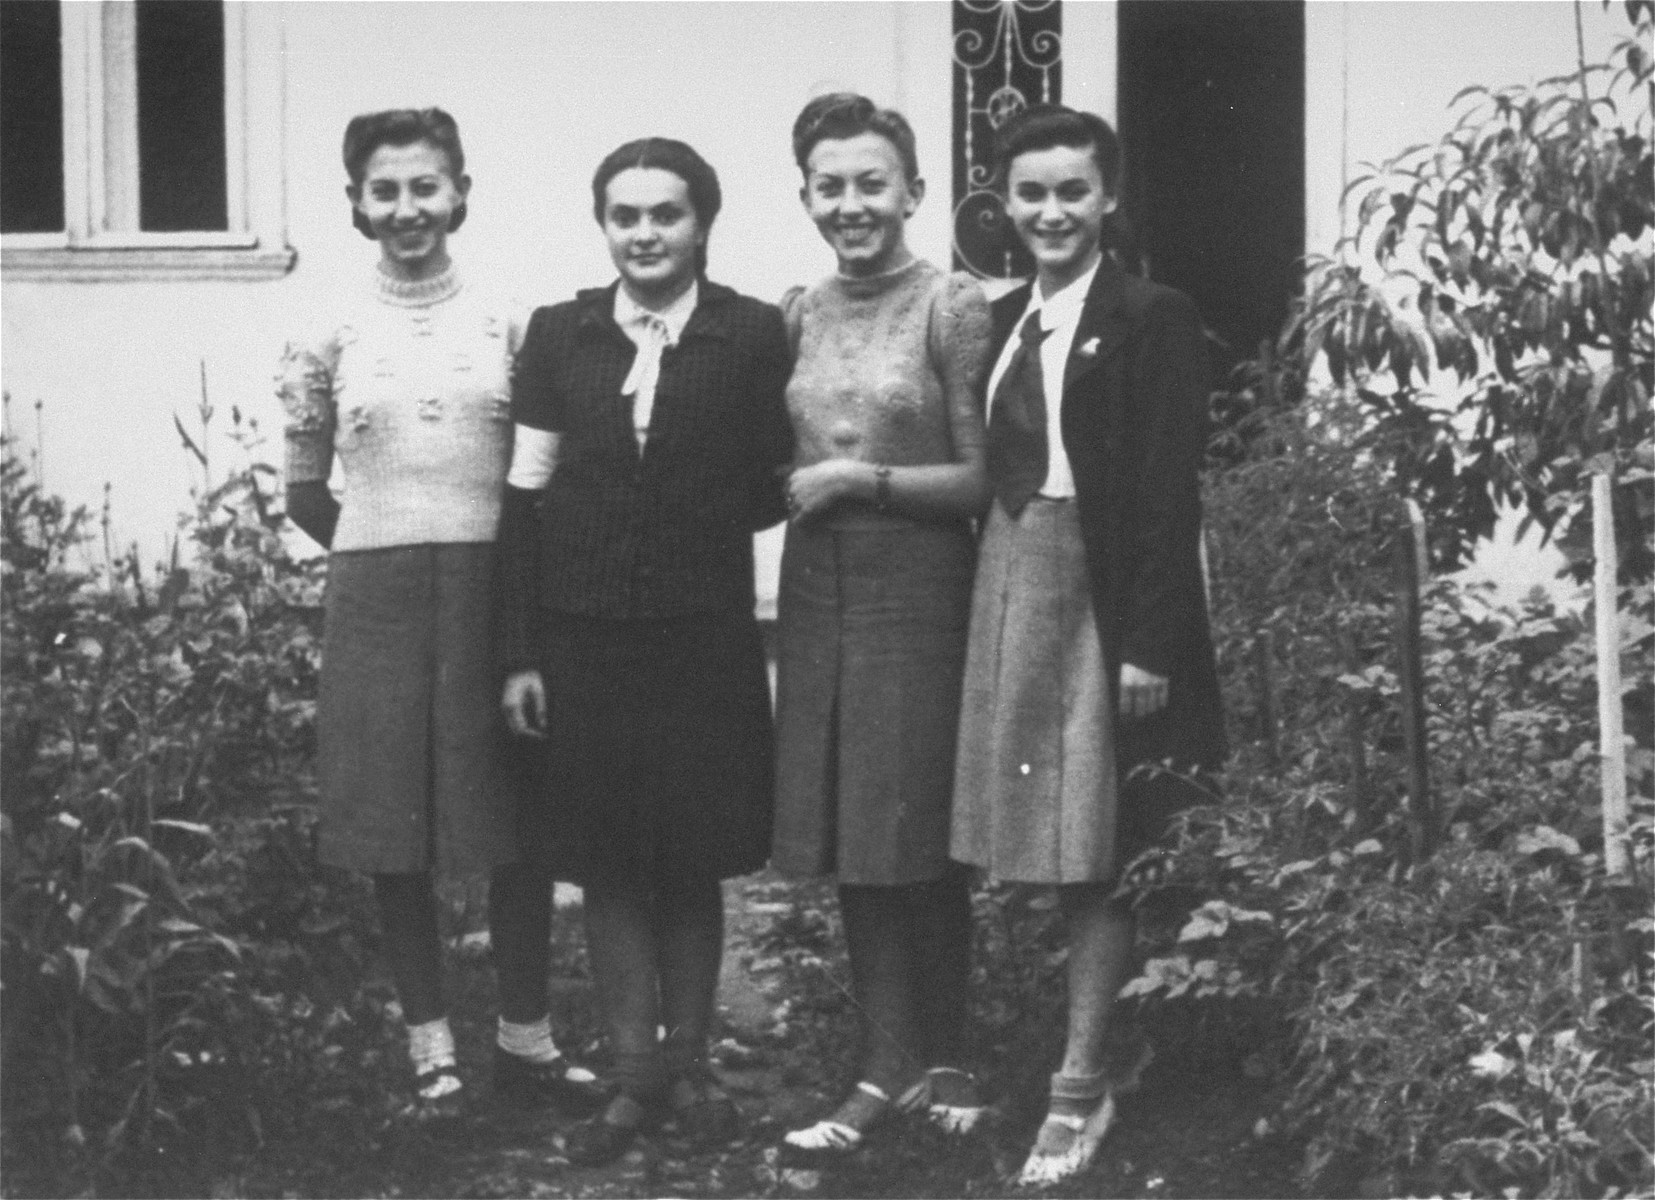 Four young Jewish women pose wearing armbands in front of the home of Renie Scheinberg in the Borislaw ghetto.  Pictured from left to right are: Luka Fleischer, Renie Scheinberg, Nina Fleischer, and Ella (last name unknown. Renie and Ella perished during the war.